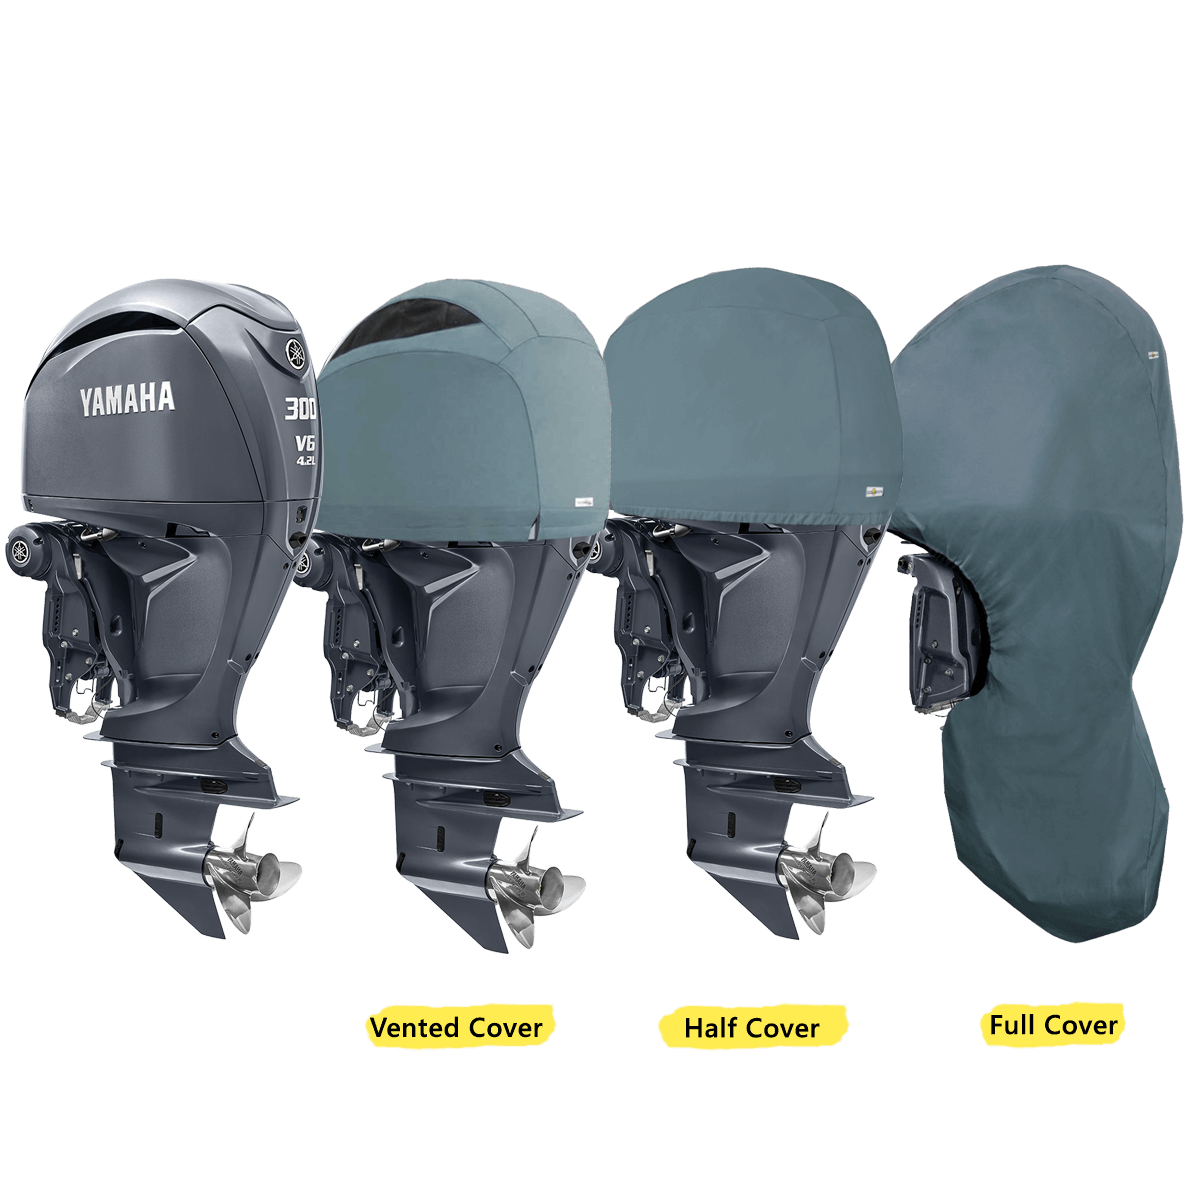 Oceansouth Covers for Yamaha Outboards